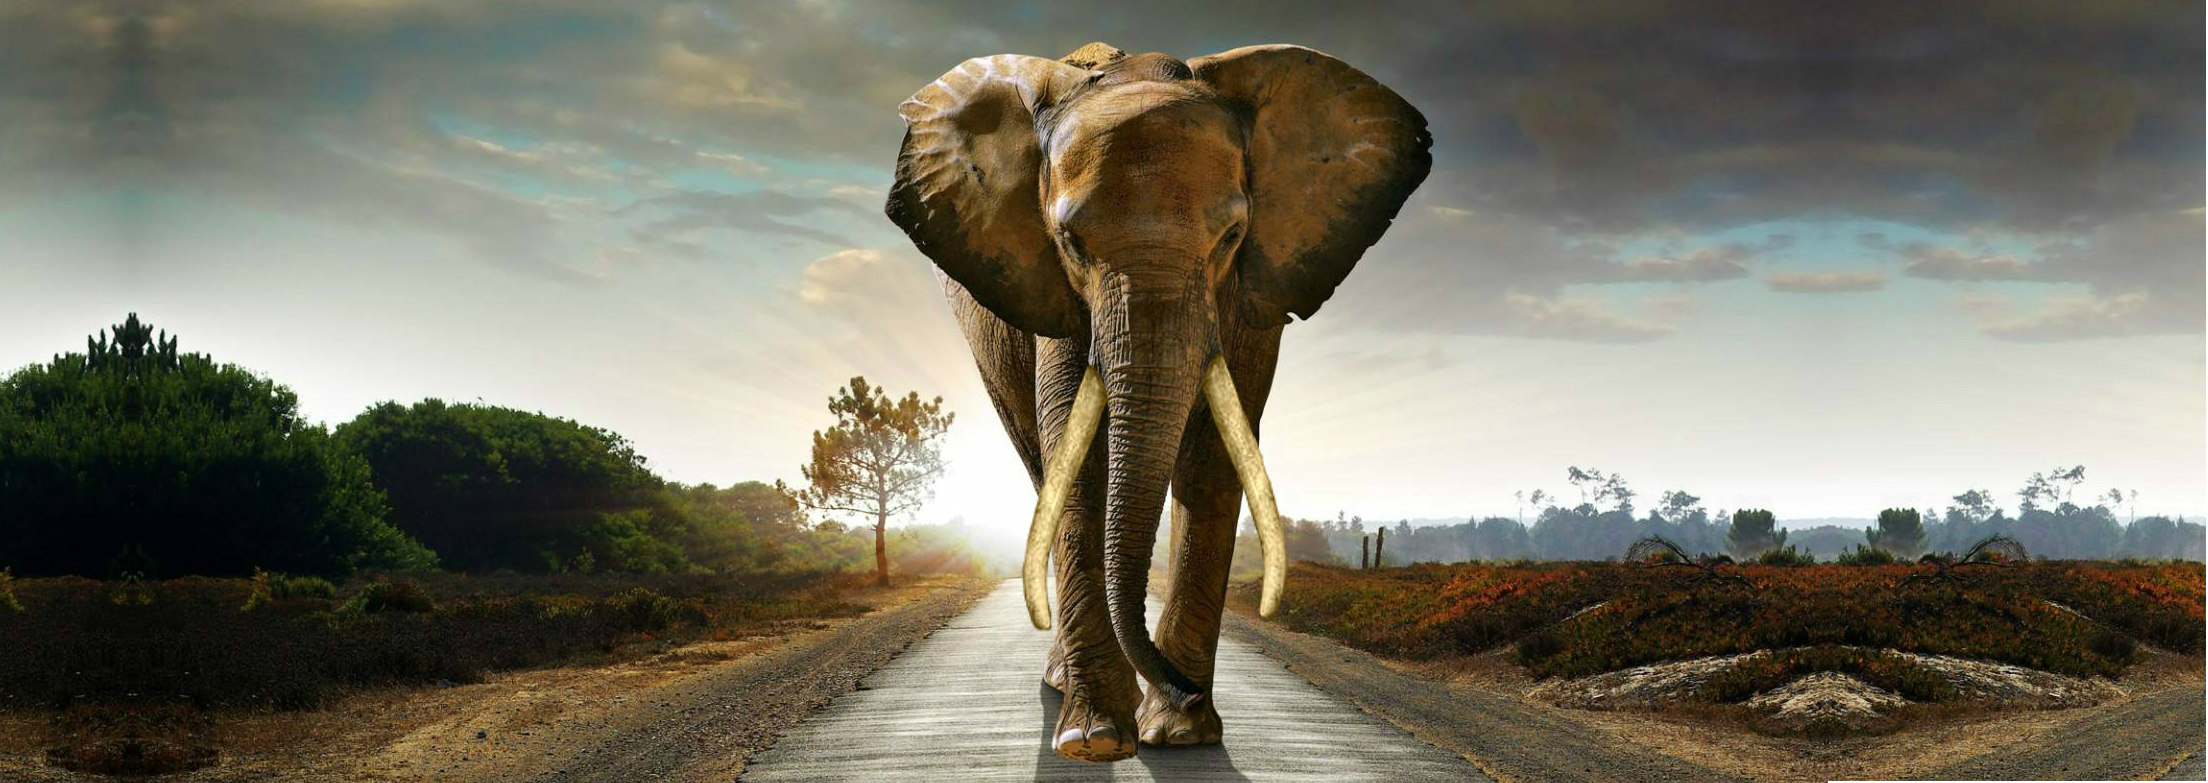 March For Elephants | Saving The Elephant From Extinction